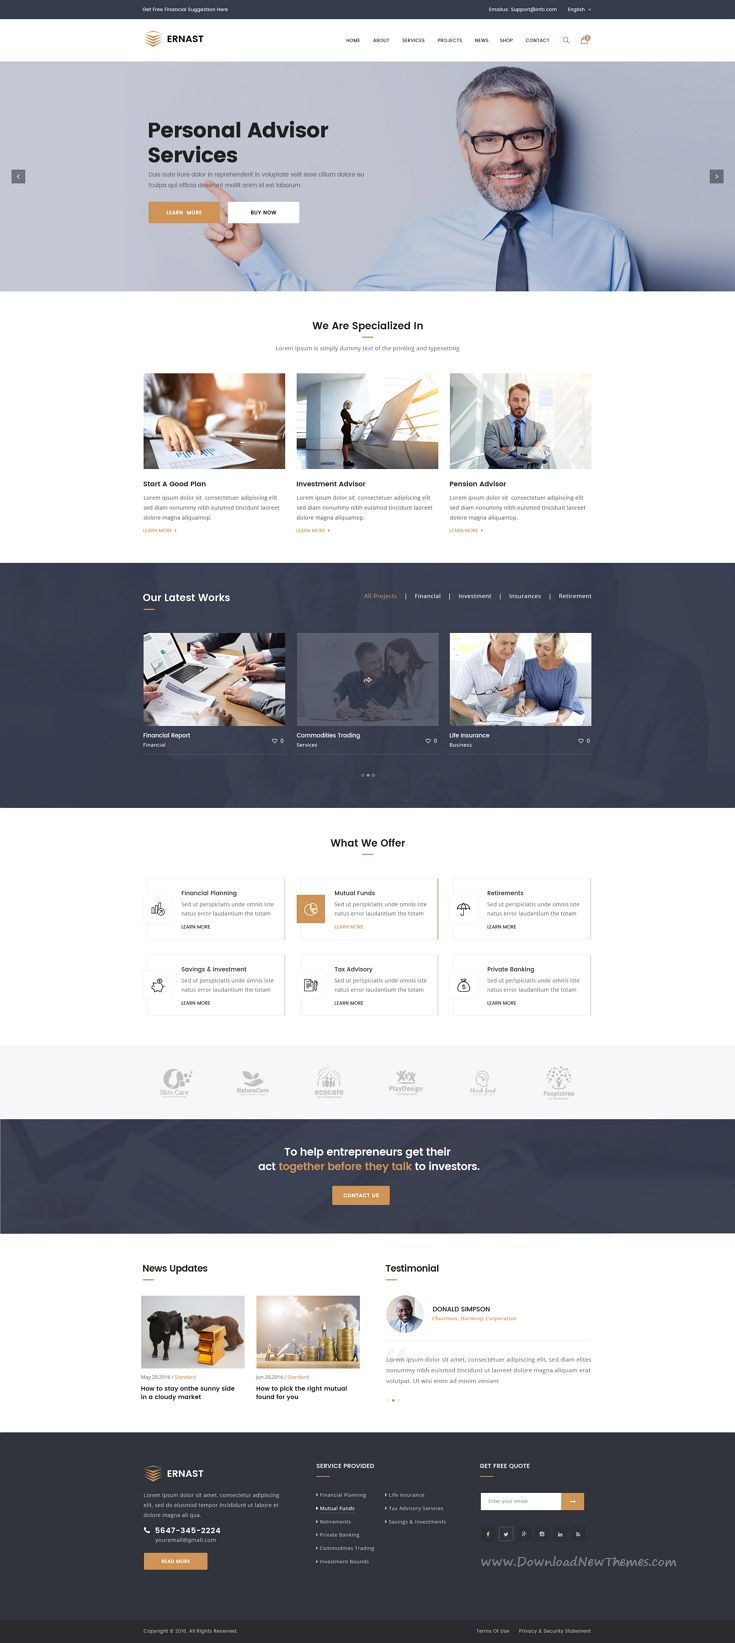 Ernast : Finance PSD Template suitable for all types of consulting businesses website.